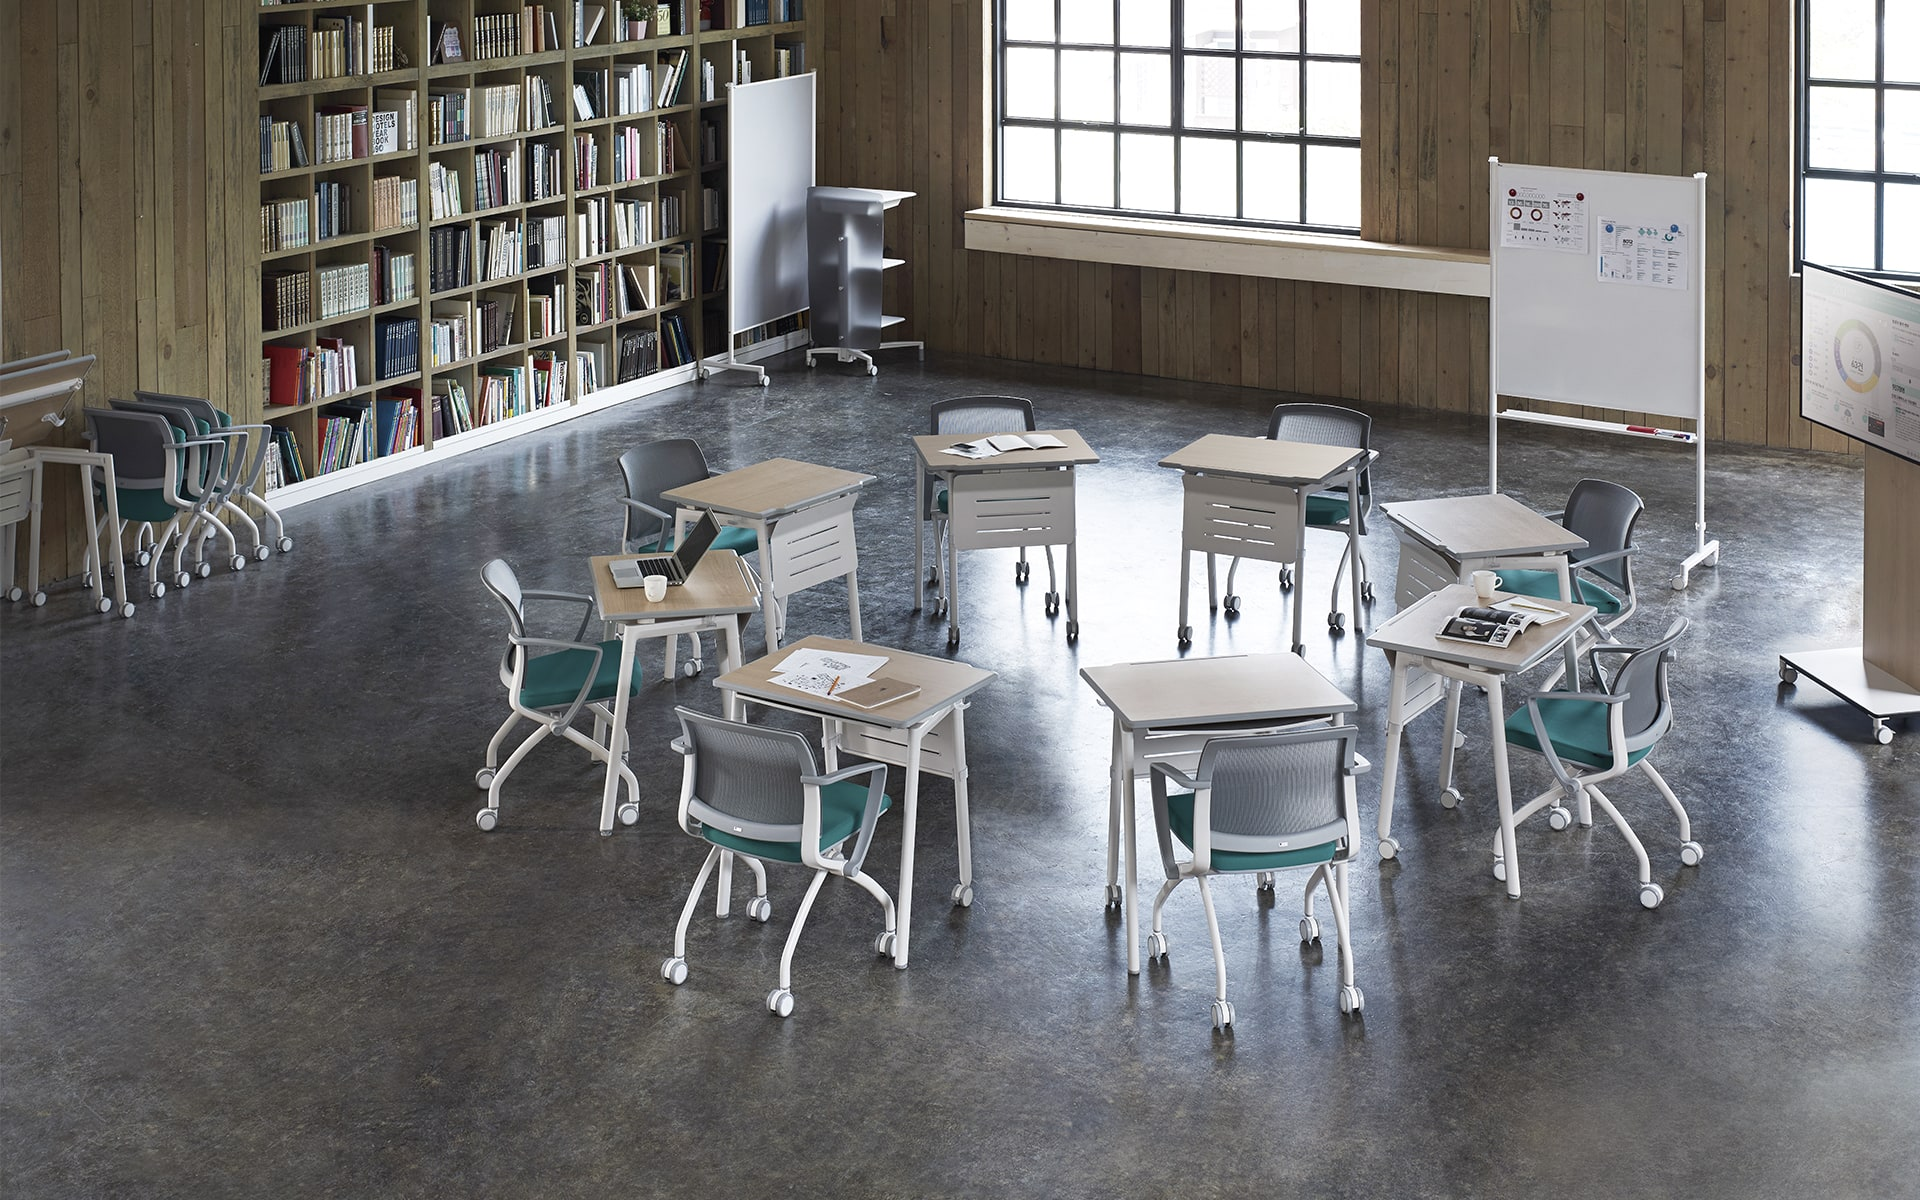 Collaborative table system Fursys Align by ITO Design, arranged to a working circle in training room